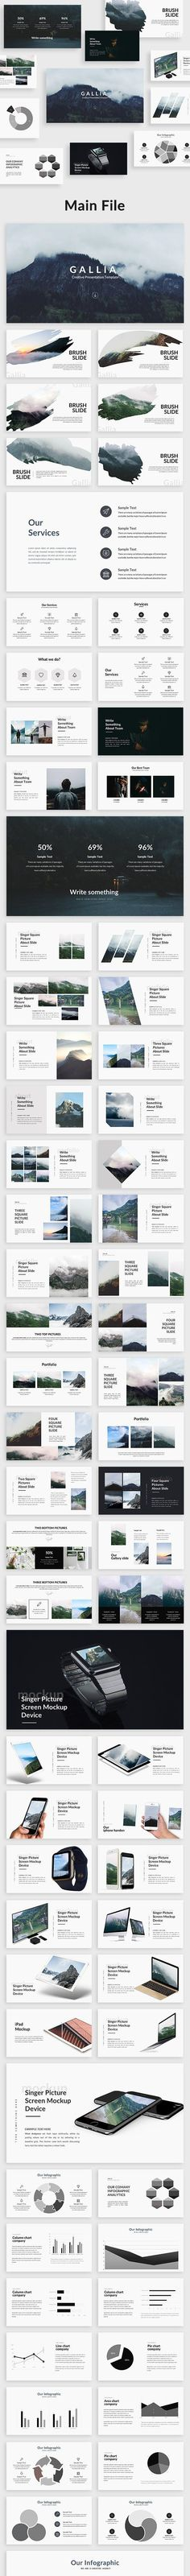 Buy Gallia - Creative Powerpoint Template UPDATE VERSION by bypaintdesign on GraphicRiver. Gallia Version (Apr We added amazing slides Gallia Version (Jun We added . Presentation Design, Presentation Templates, Broken Images, Creative Powerpoint Templates, Creative Visualization, Infographic, Data Charts, Graphic Design, Infographics